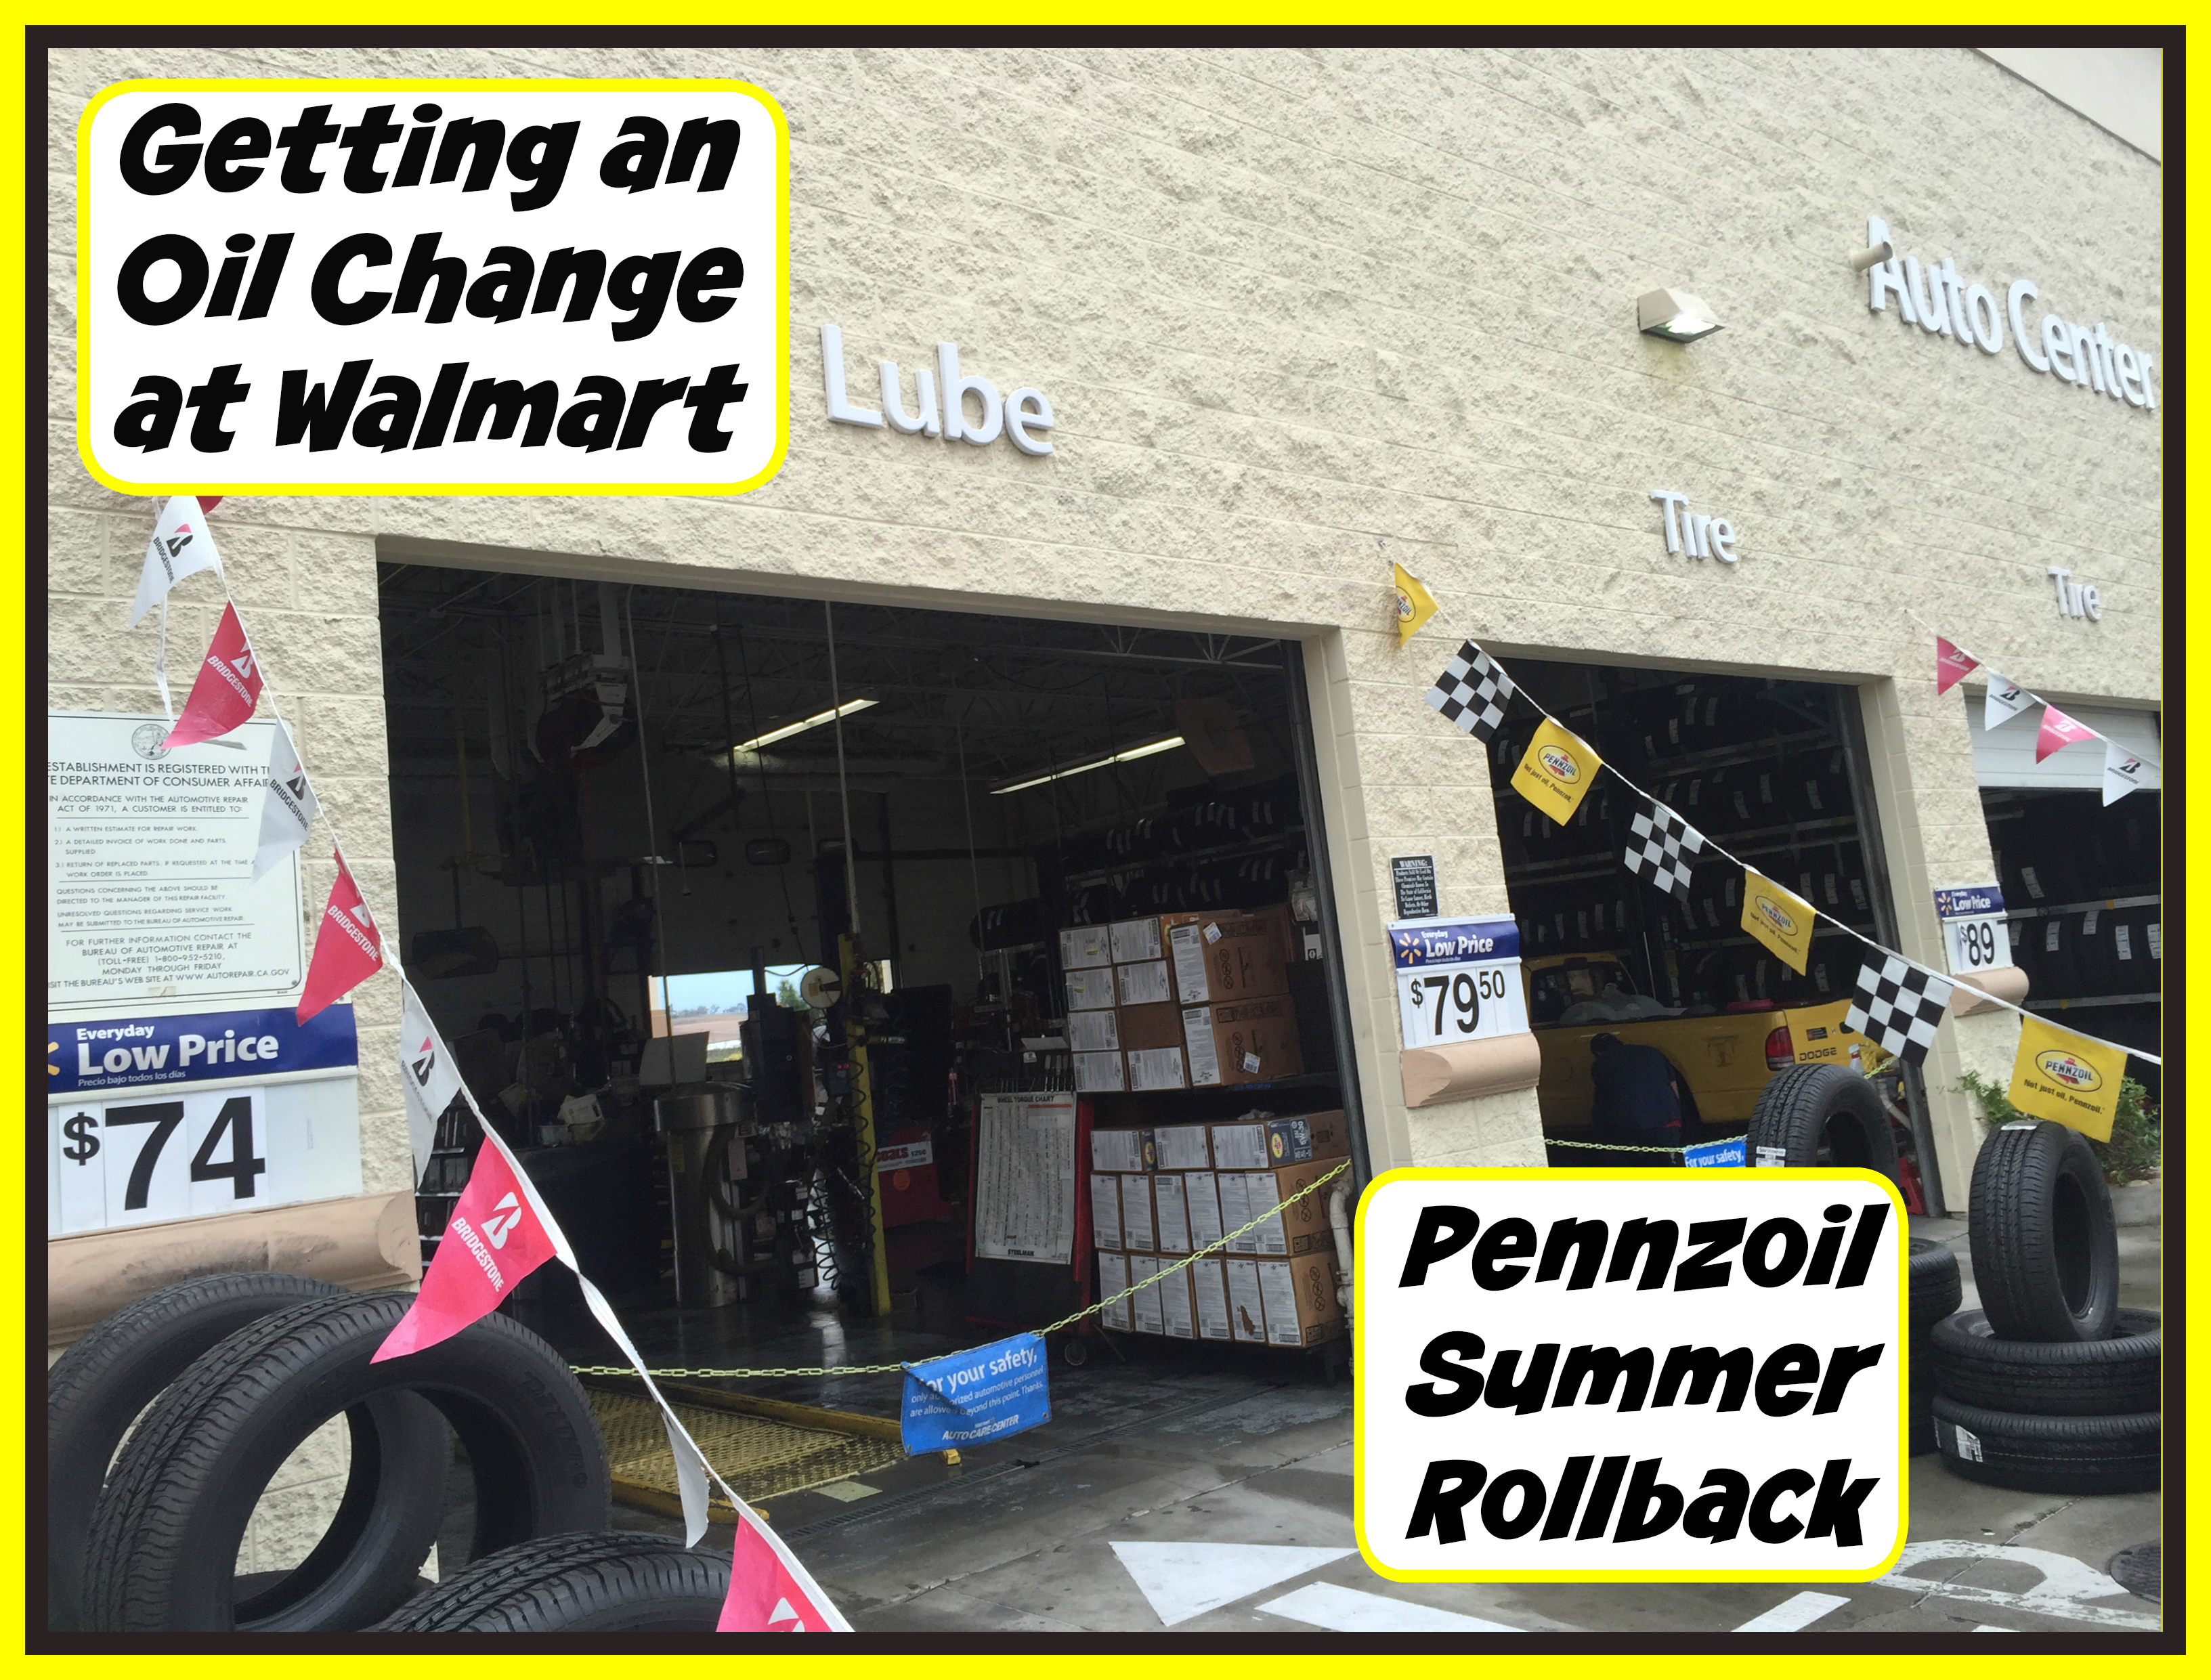 Getting Our Oil Changed at Walmart and the Pennzoil Summer Rollback